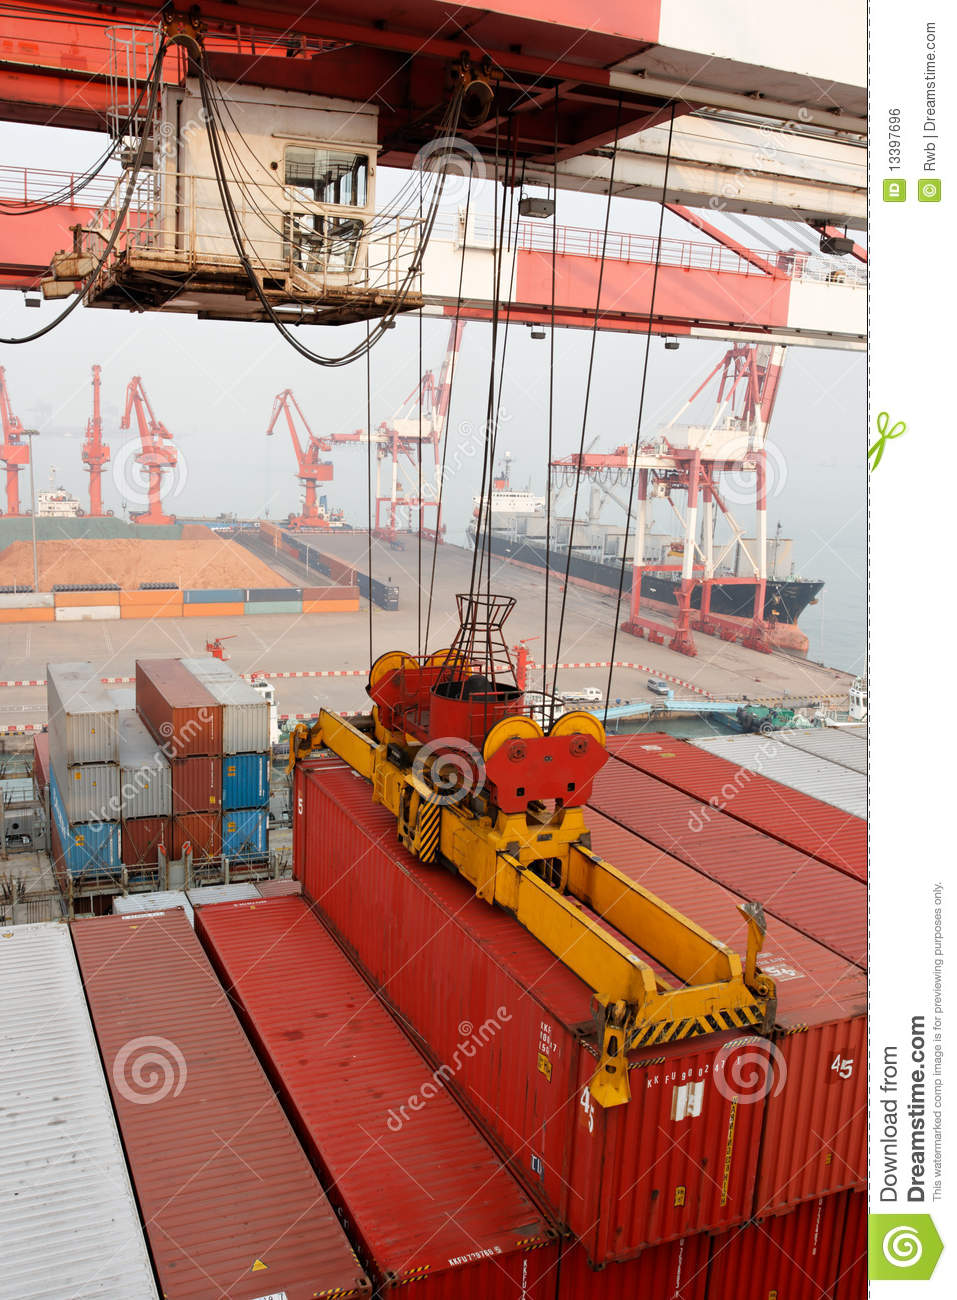 Harbor Freight Gantry Crane >> Gantry Crane Loads Container Onto Freighter Ship Royalty Free Stock Image - Image: 13397696